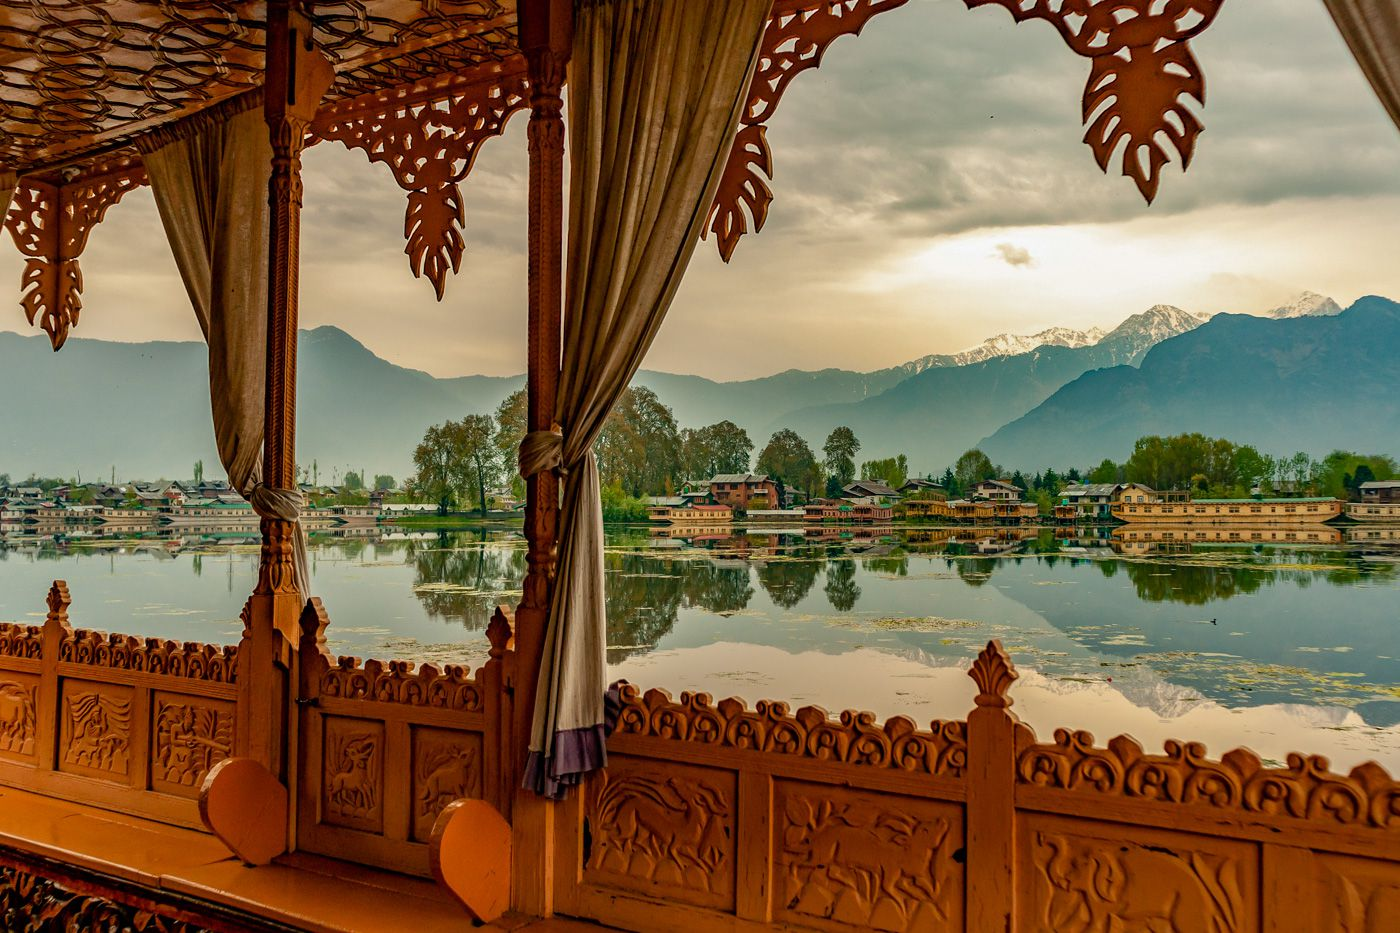 Srinagar Travel Cost - Average Price of a Vacation to Srinagar: Food & Meal  Budget, Daily & Weekly Expenses   BudgetYourTrip.com